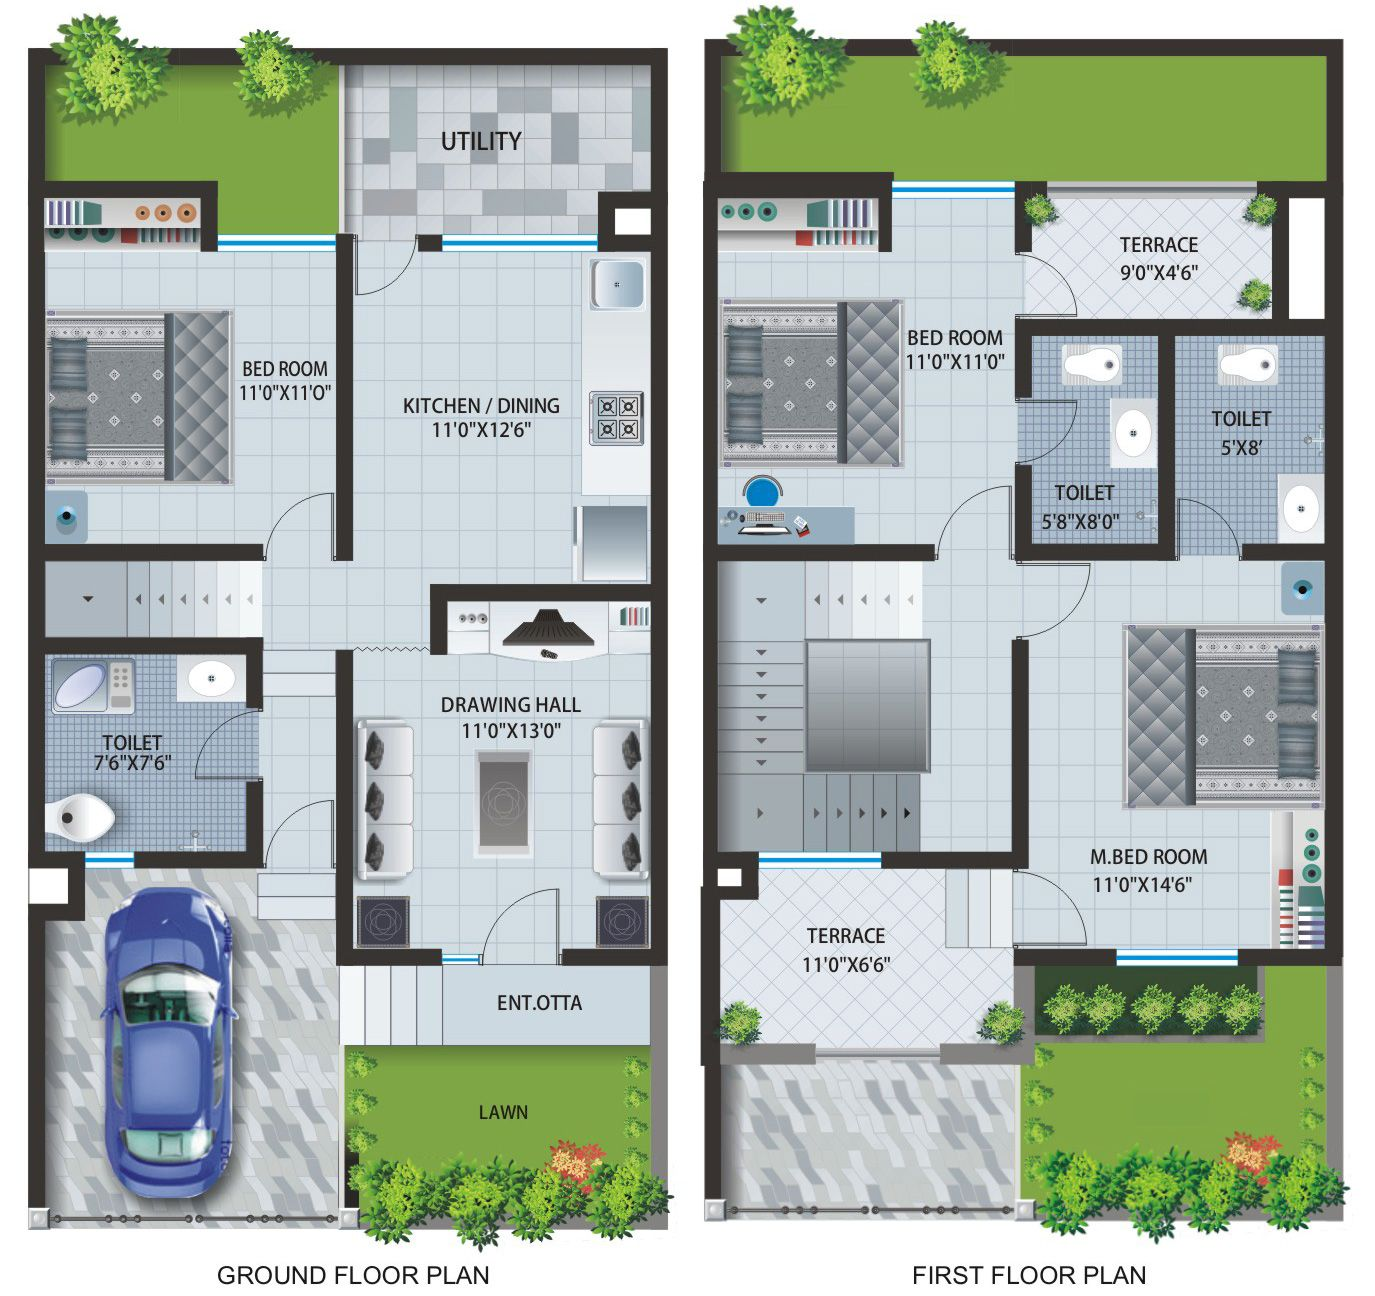 Floor plans of apartments row houses at caroline baner for Small bungalow house plans in india